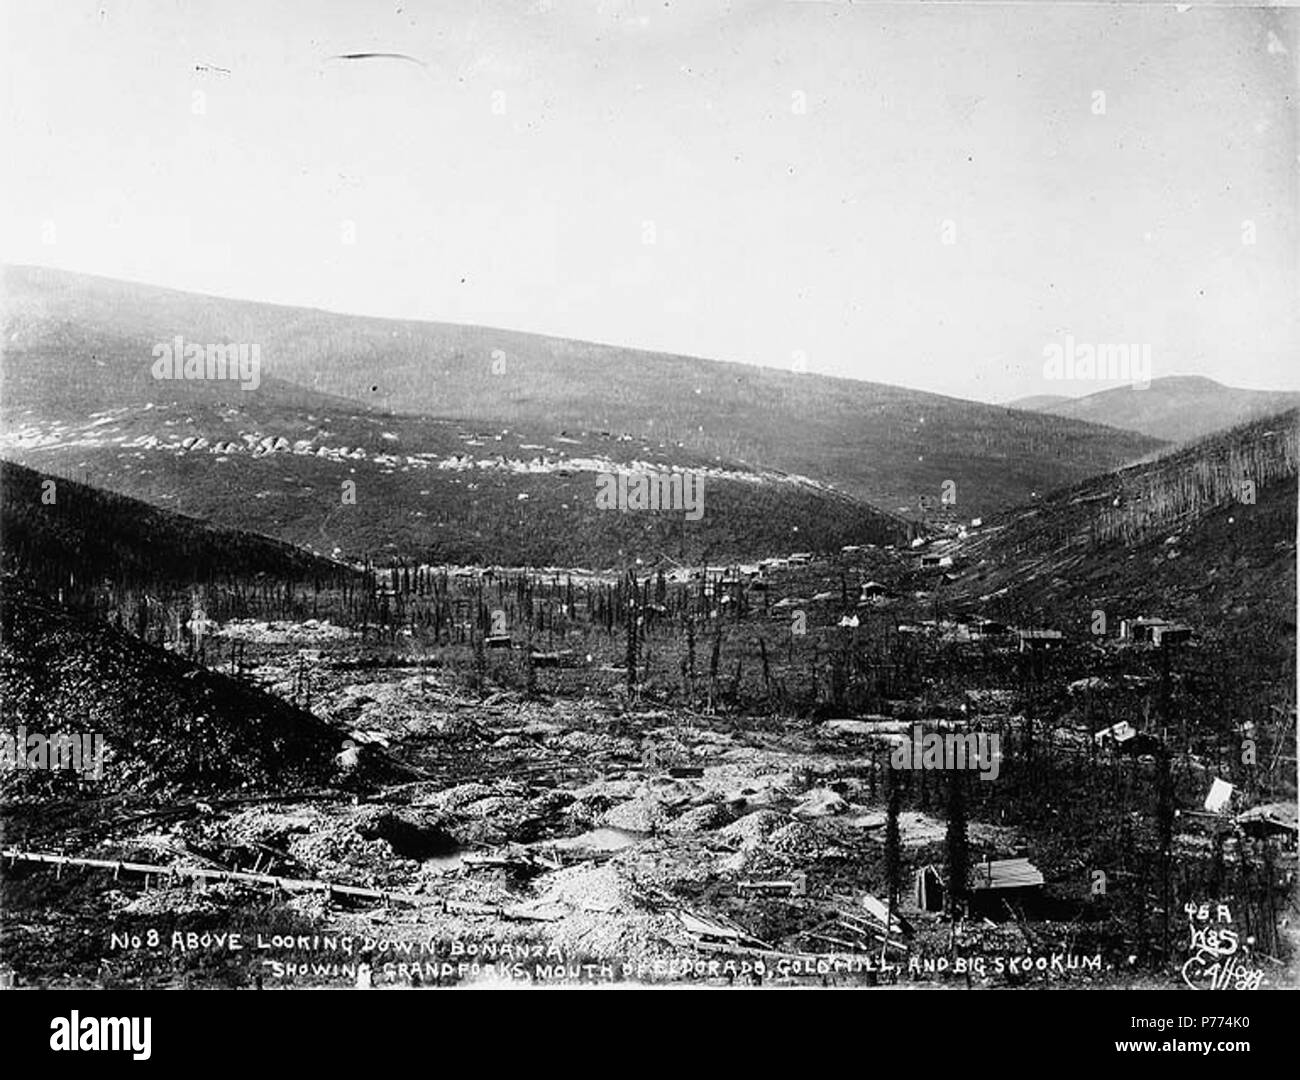 . English: Mining claim No. 8 above Bonanza Creek showing Grand Forks, mouth of Eldorado, Gold Hill, and Big Skookum, Yukon Territory, ca. 1898. English: Caption on image: 'No 8 above looking down Bonanza showing Grand Forks, mouth of Eldorado, Gold Hill, and Big Skookum' Original image in Hegg Album 24, page 33 . Original photograph by Eric A. Hegg 558; copied by Webster and Stevens 45.A . Klondike Gold Rush. Subjects (LCTGM): Gold mining--Yukon--Bonanza Creek; Mining claims--Yukon--Bonanza Creek; Rivers--Yukon Subjects (LCSH): Grand Forks (Yukon); Eldorado Creek (Yukon); Gold Hill (Yukon); B - Stock Image